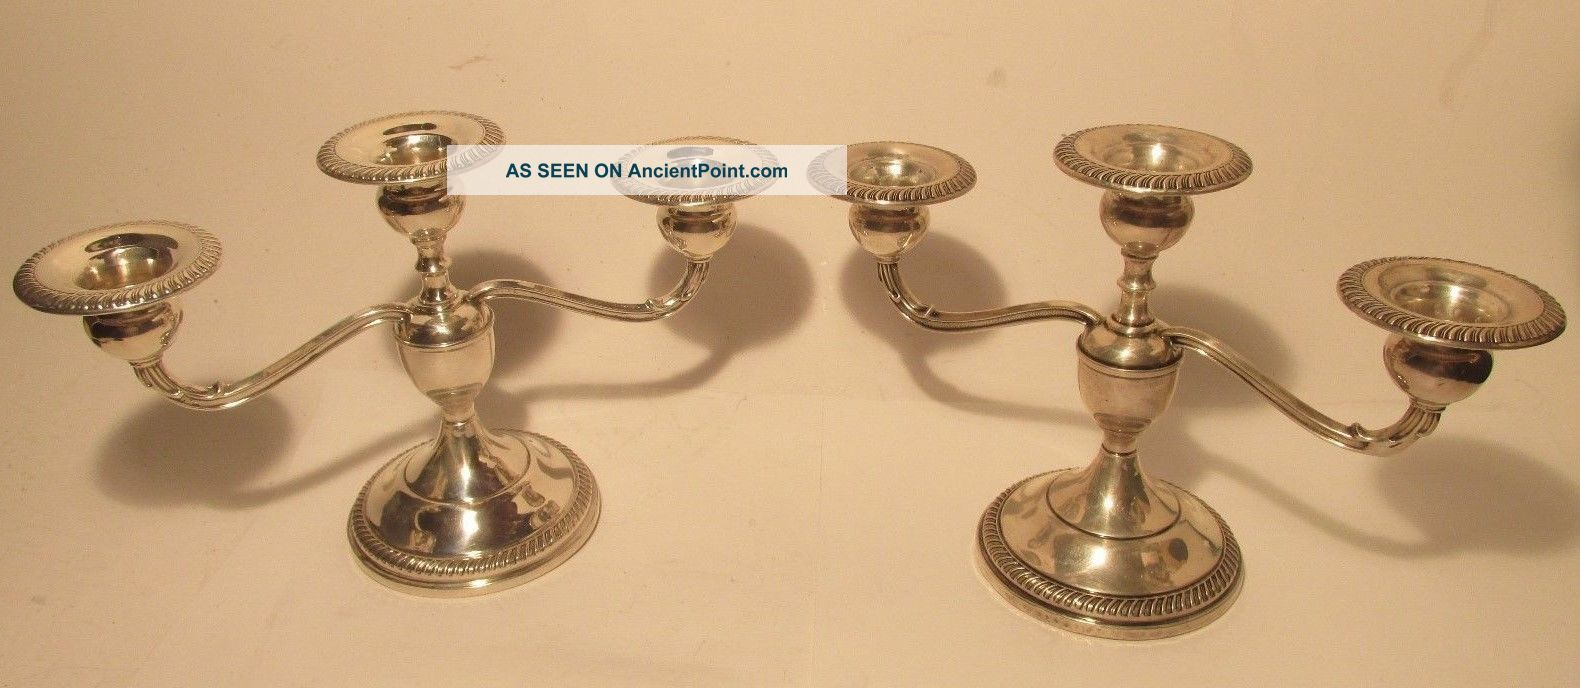 Vintage 1930s - 1940s Fisher Silversmiths Sterling Silver 3 Candle Candelabras Nr Candlesticks & Candelabra photo